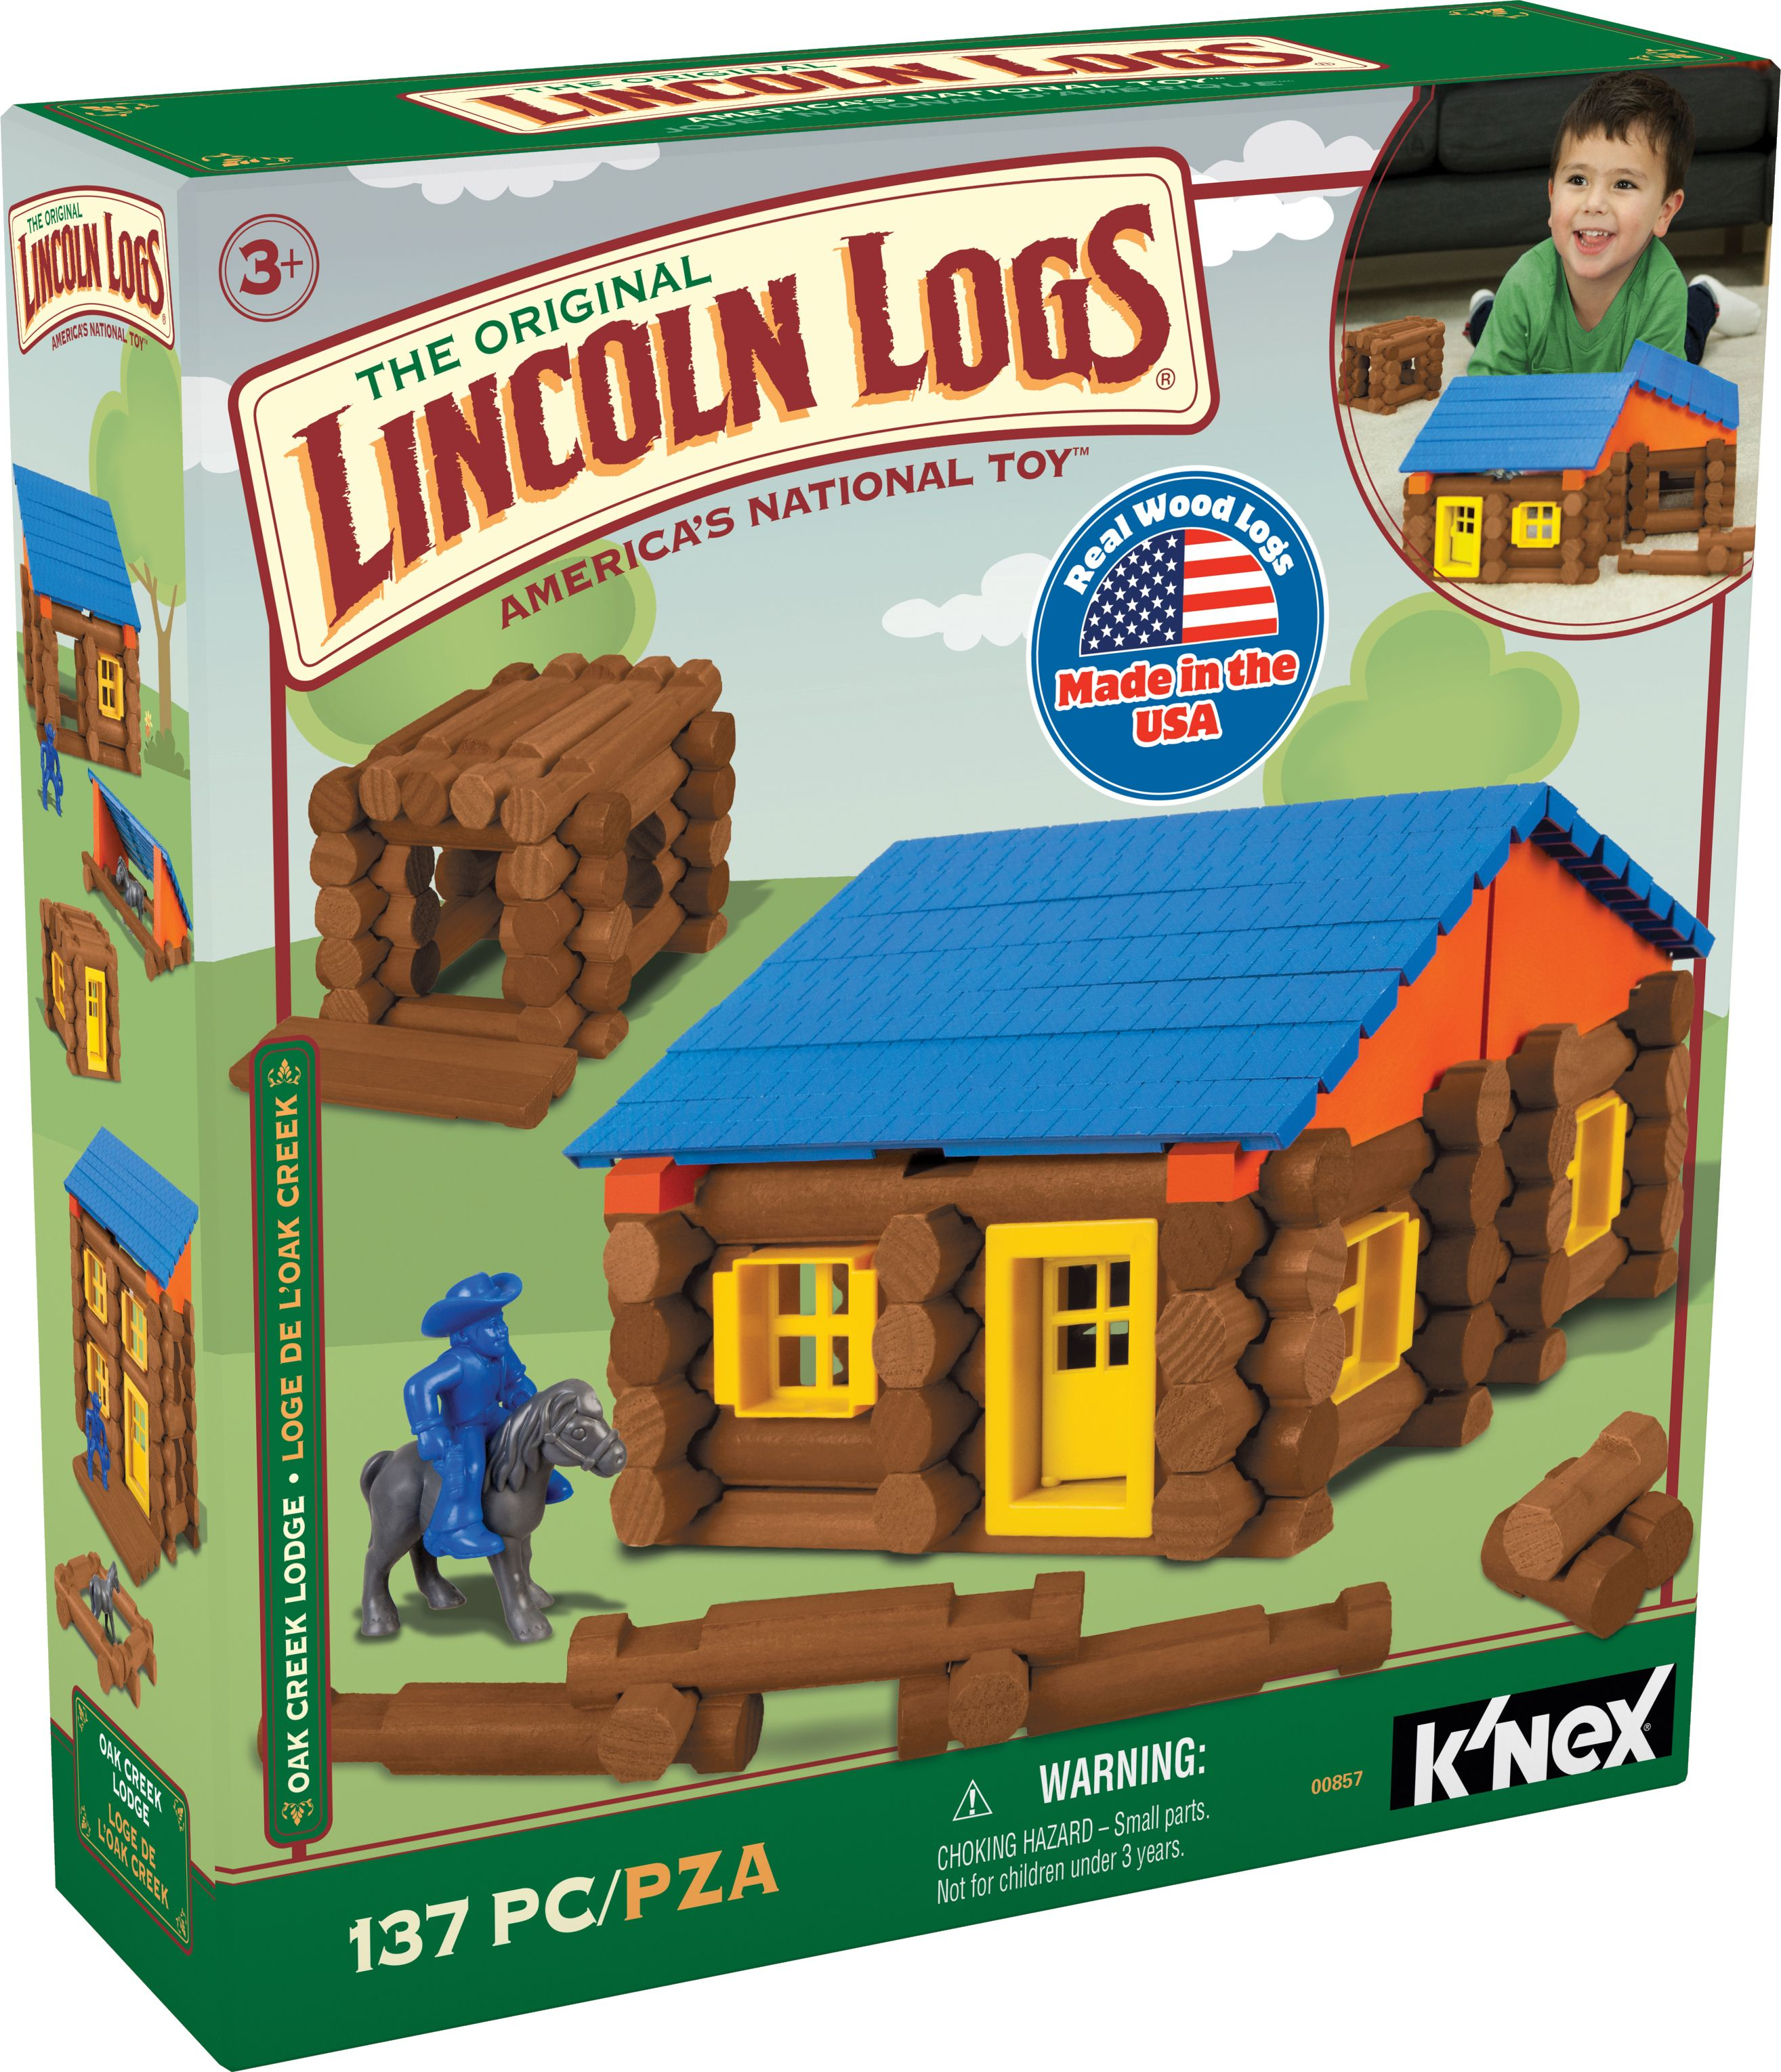 LINCOLN LOGS Oak Creek Lodge 137 Pieces Ages 3 Preschool Education Toy by LINCOLN LOGS